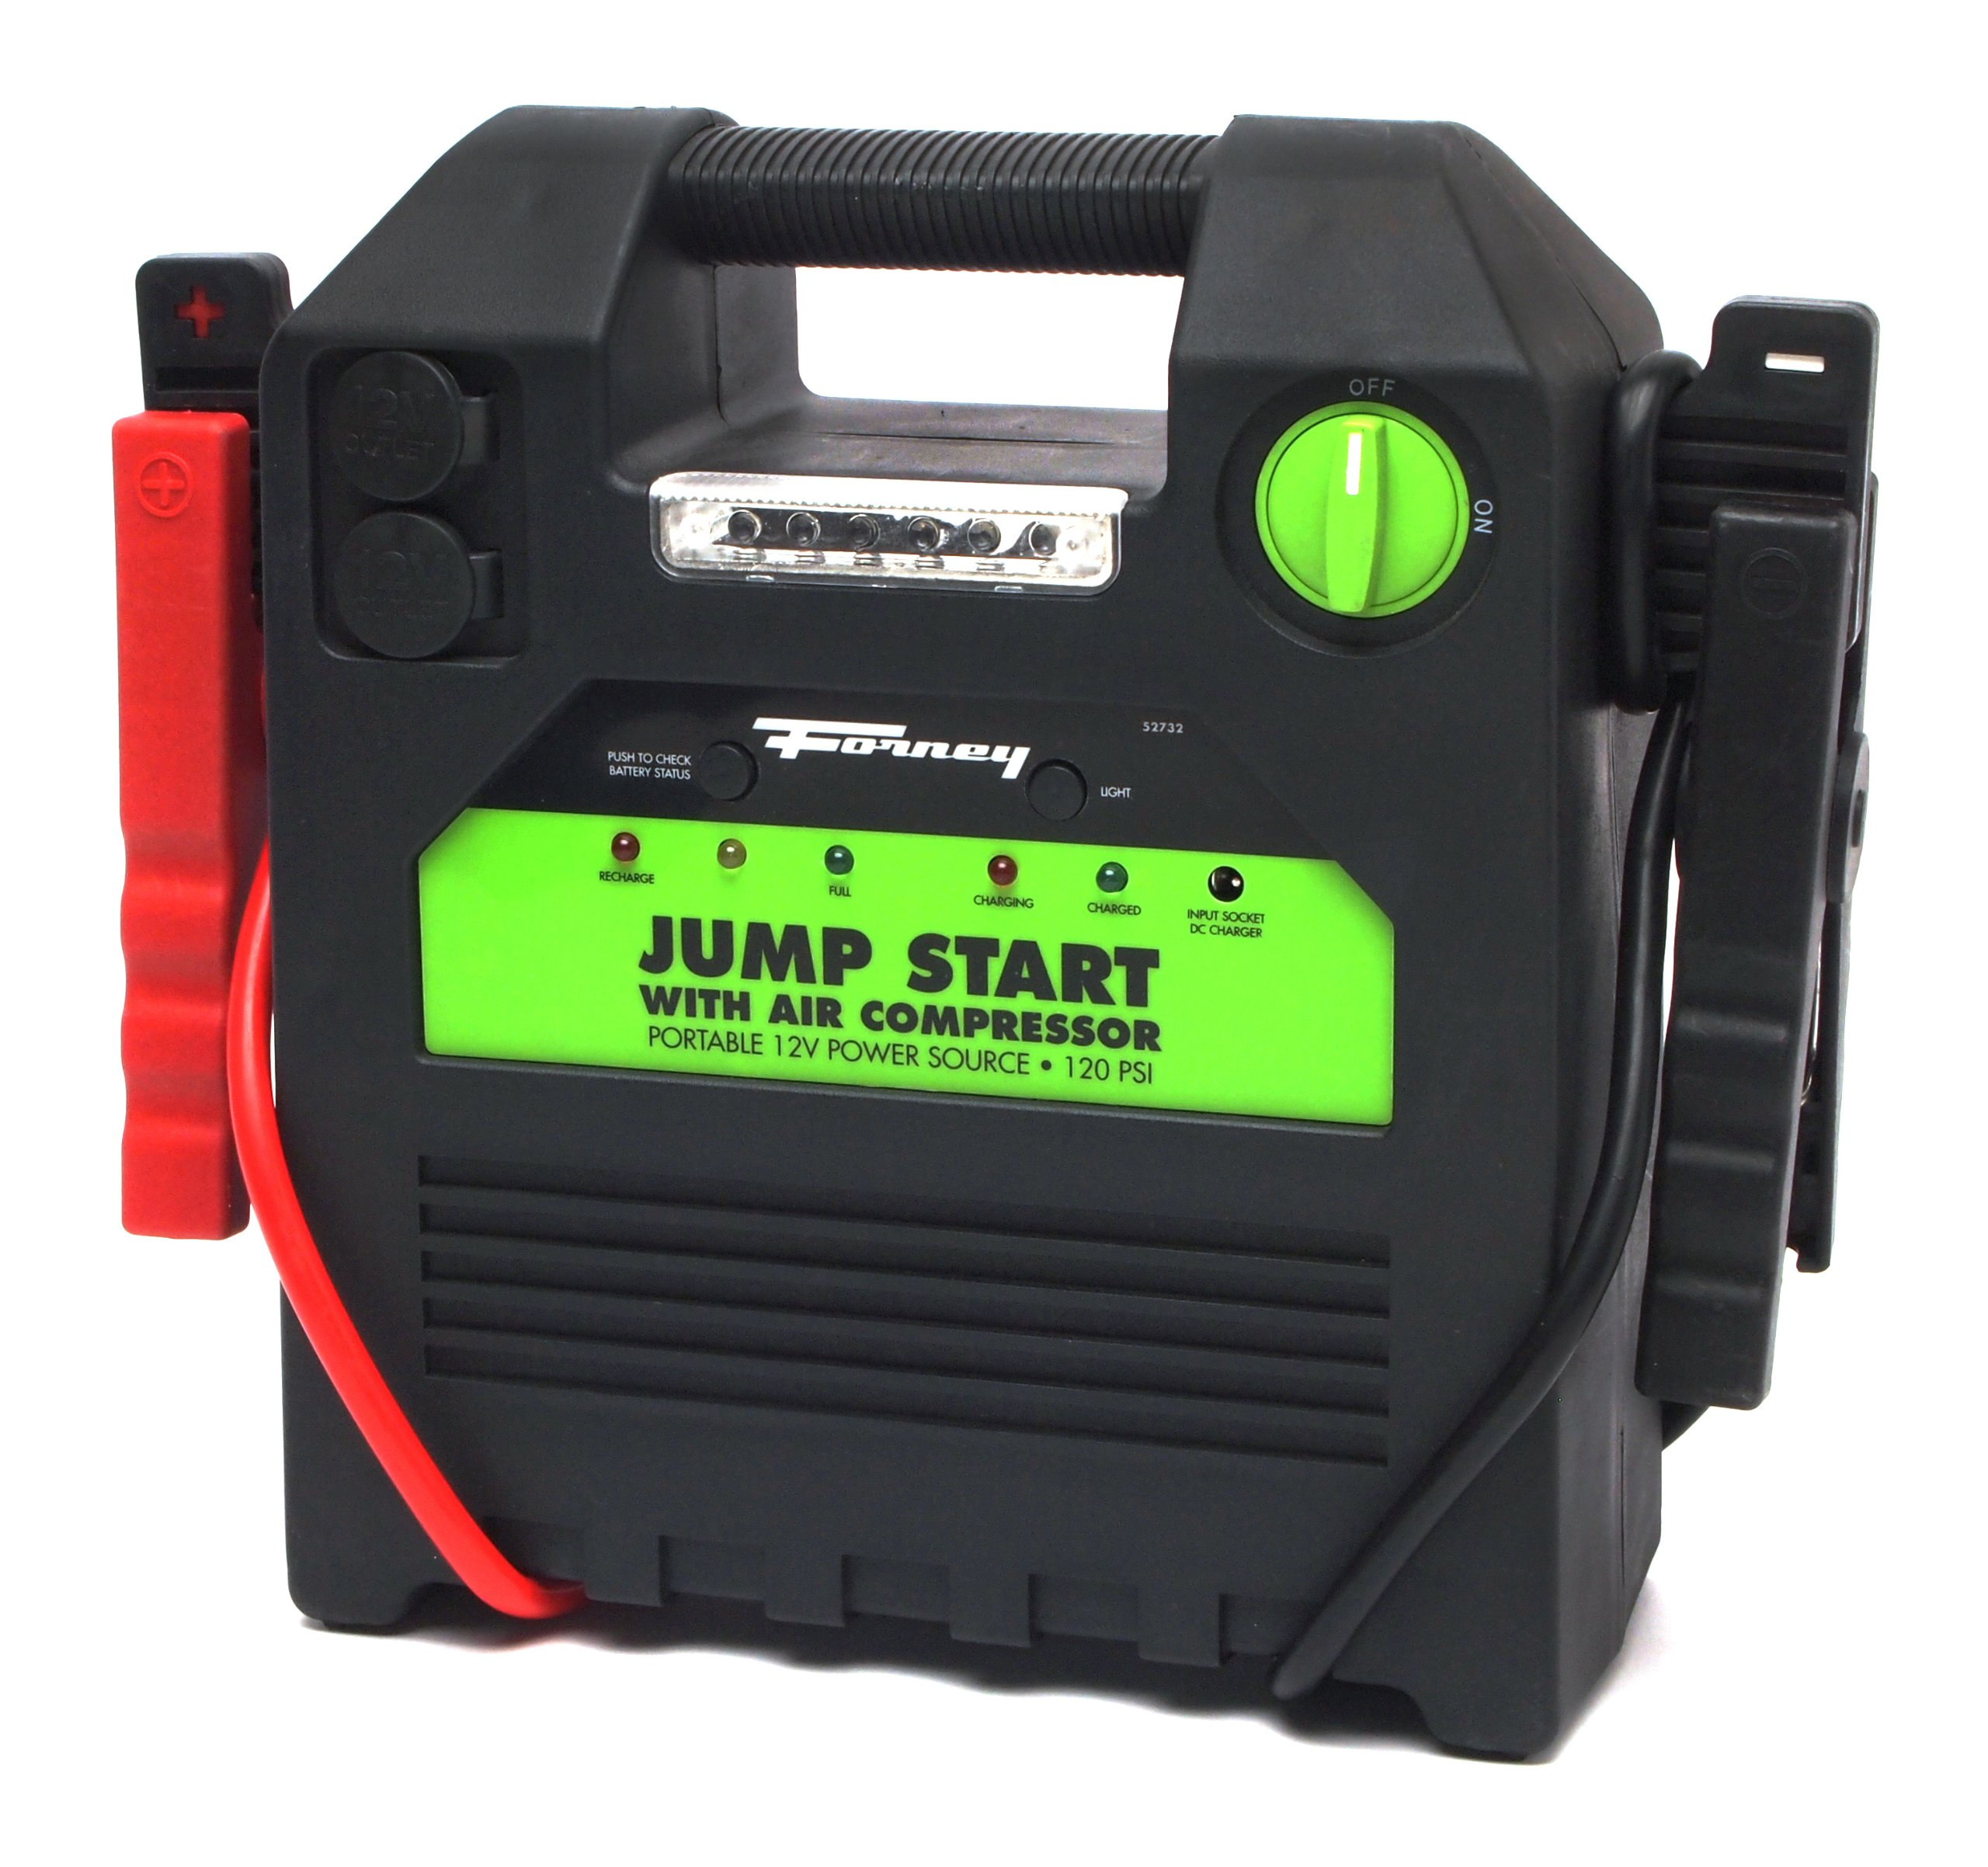 Forney 52732 Battery Booster Pack with 120 PSI Air Compressor, 18-Amp Hour, 12-Volt Jump Start by Forney (Image #4)